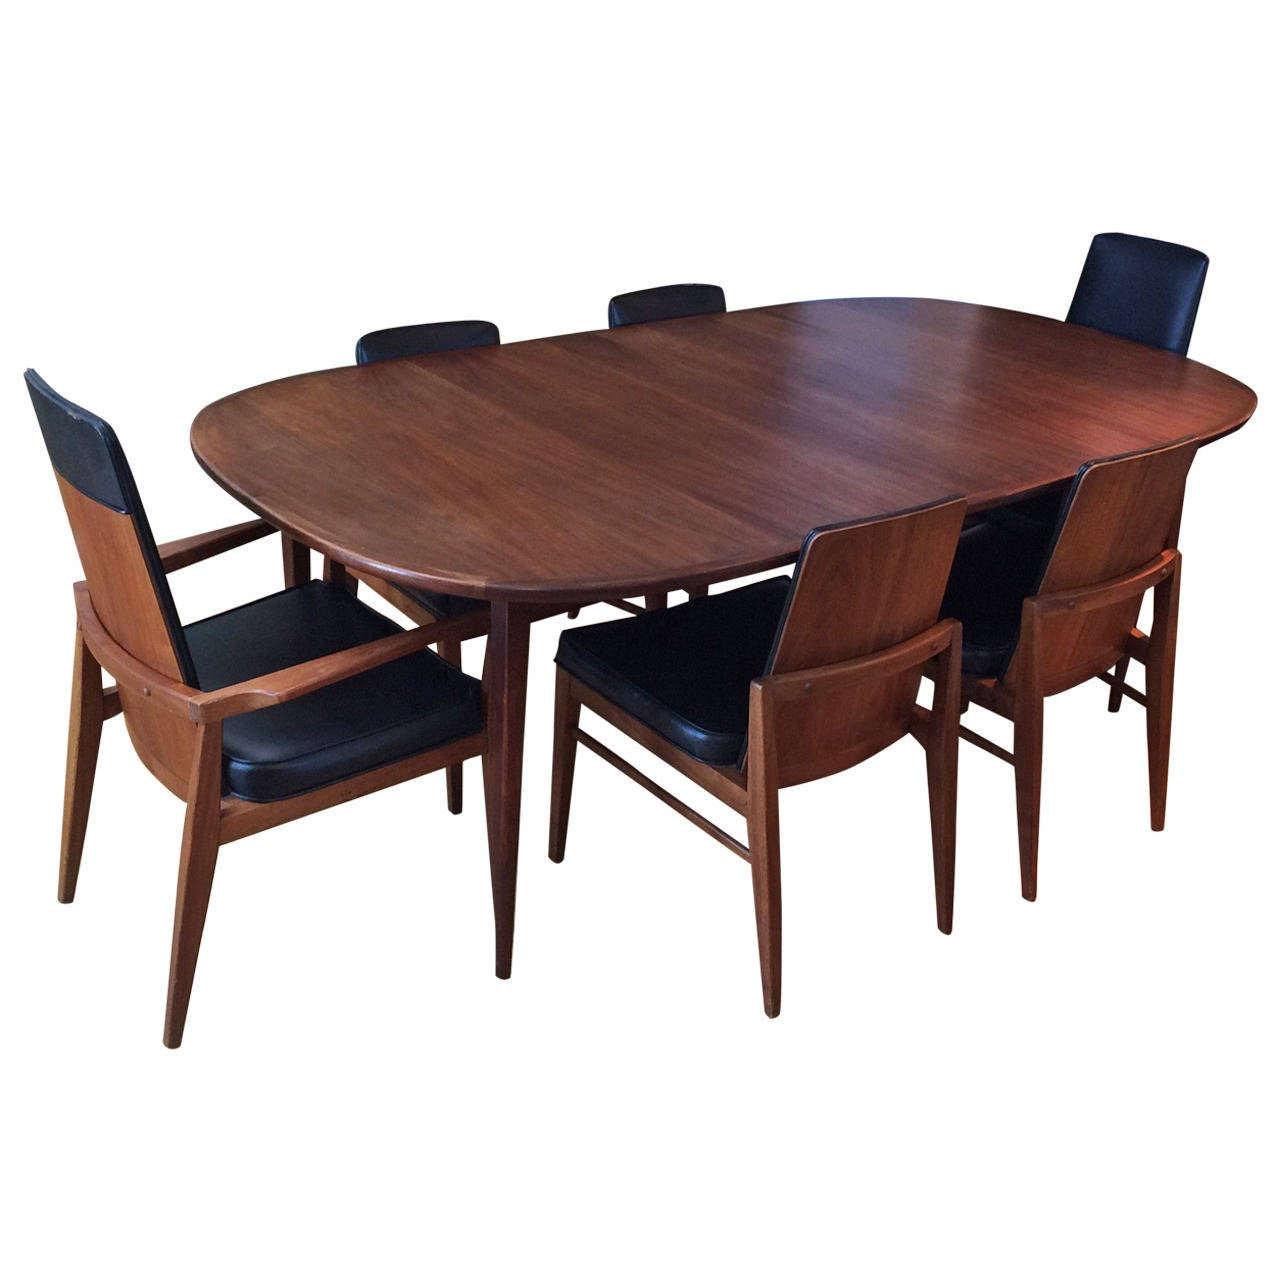 Mid century modern walnut dining set at 1stdibs for Modern dining furniture